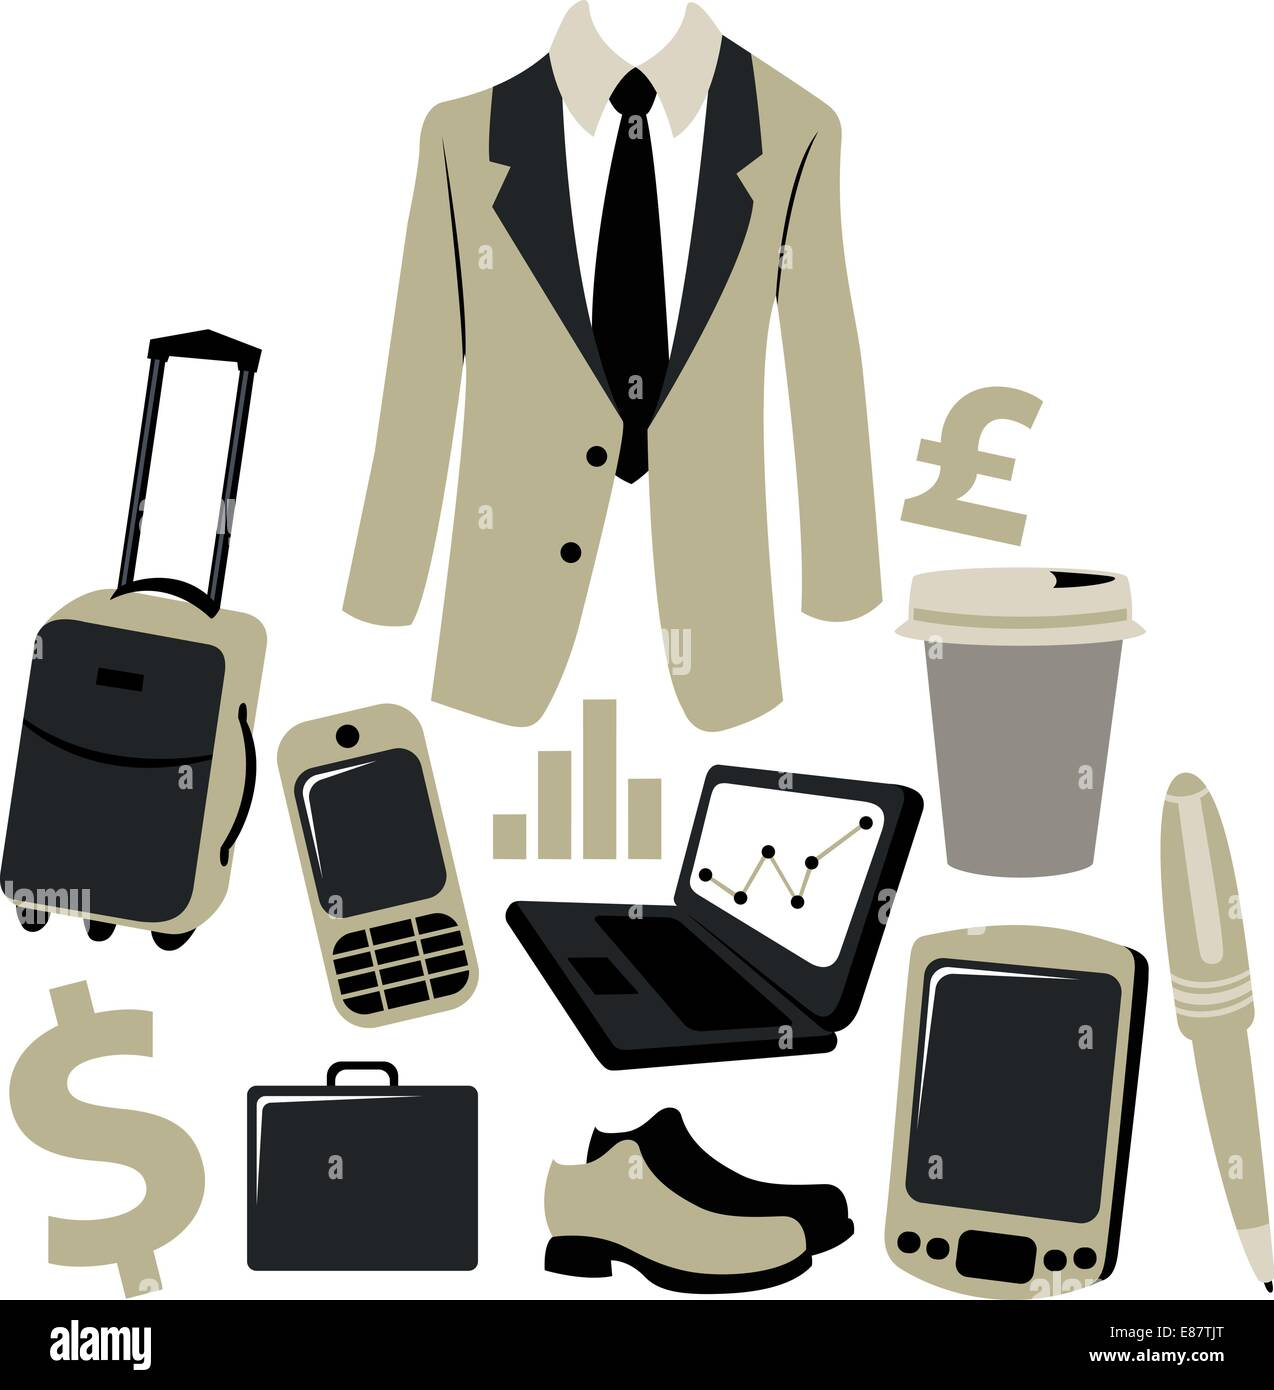 Vector illustration of bussiness man accessories set. - Stock Vector